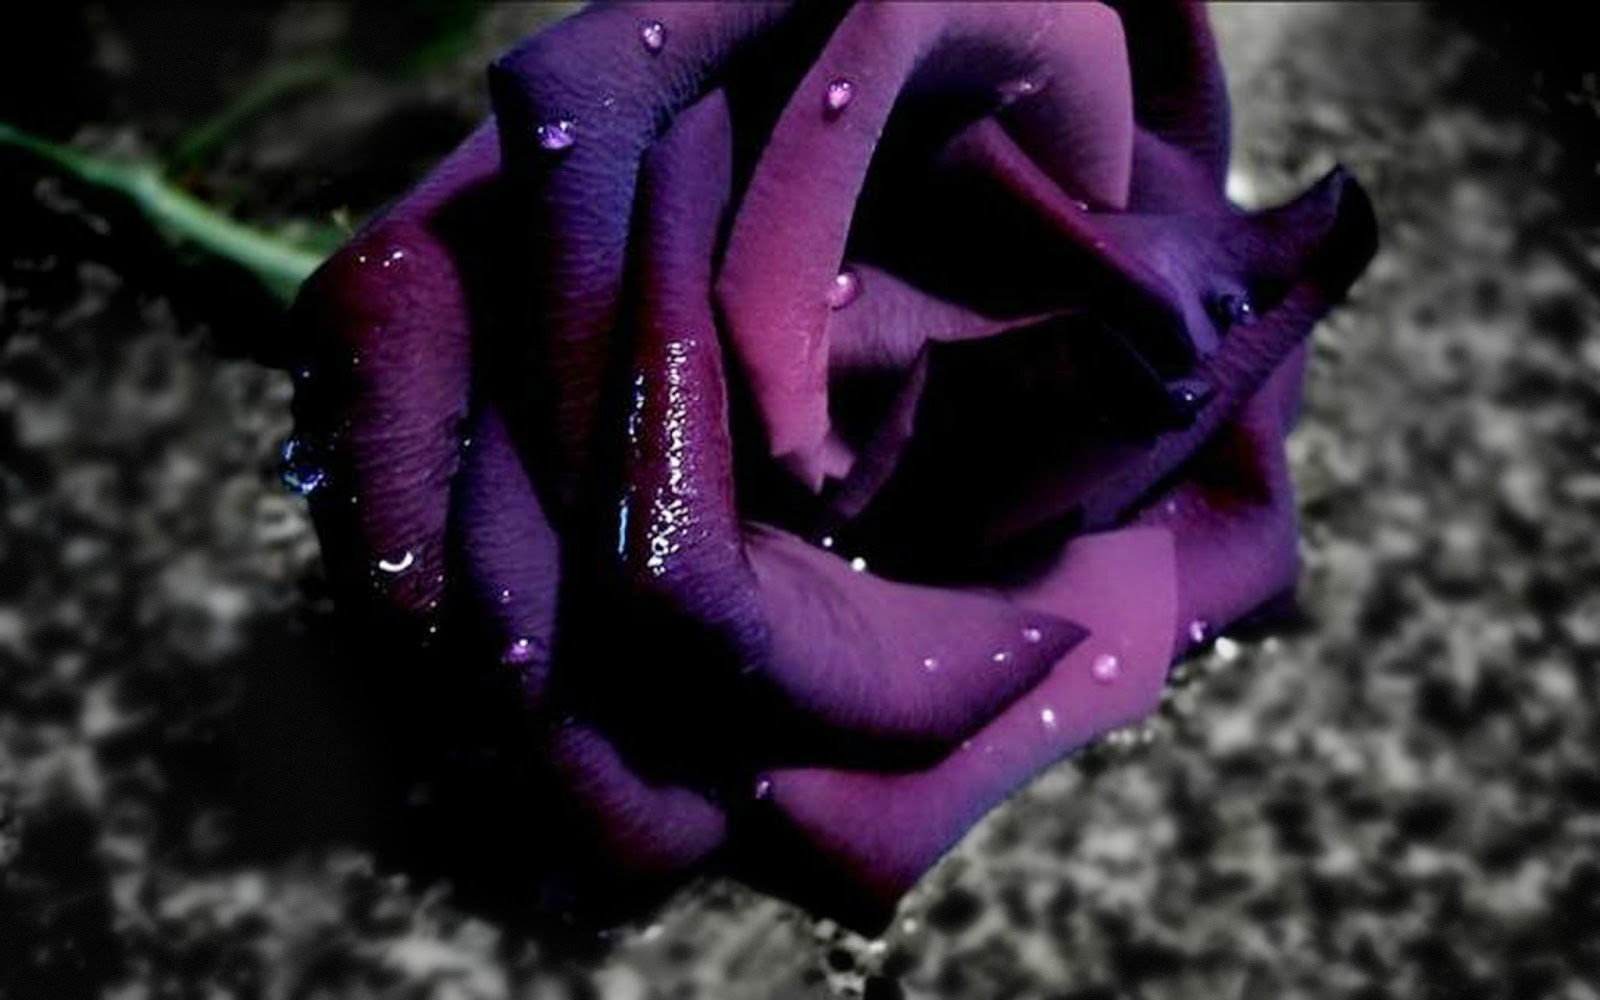 Purple Roses Background Images: Beautiful Roses HD Desktop Wallpapers In 1080p